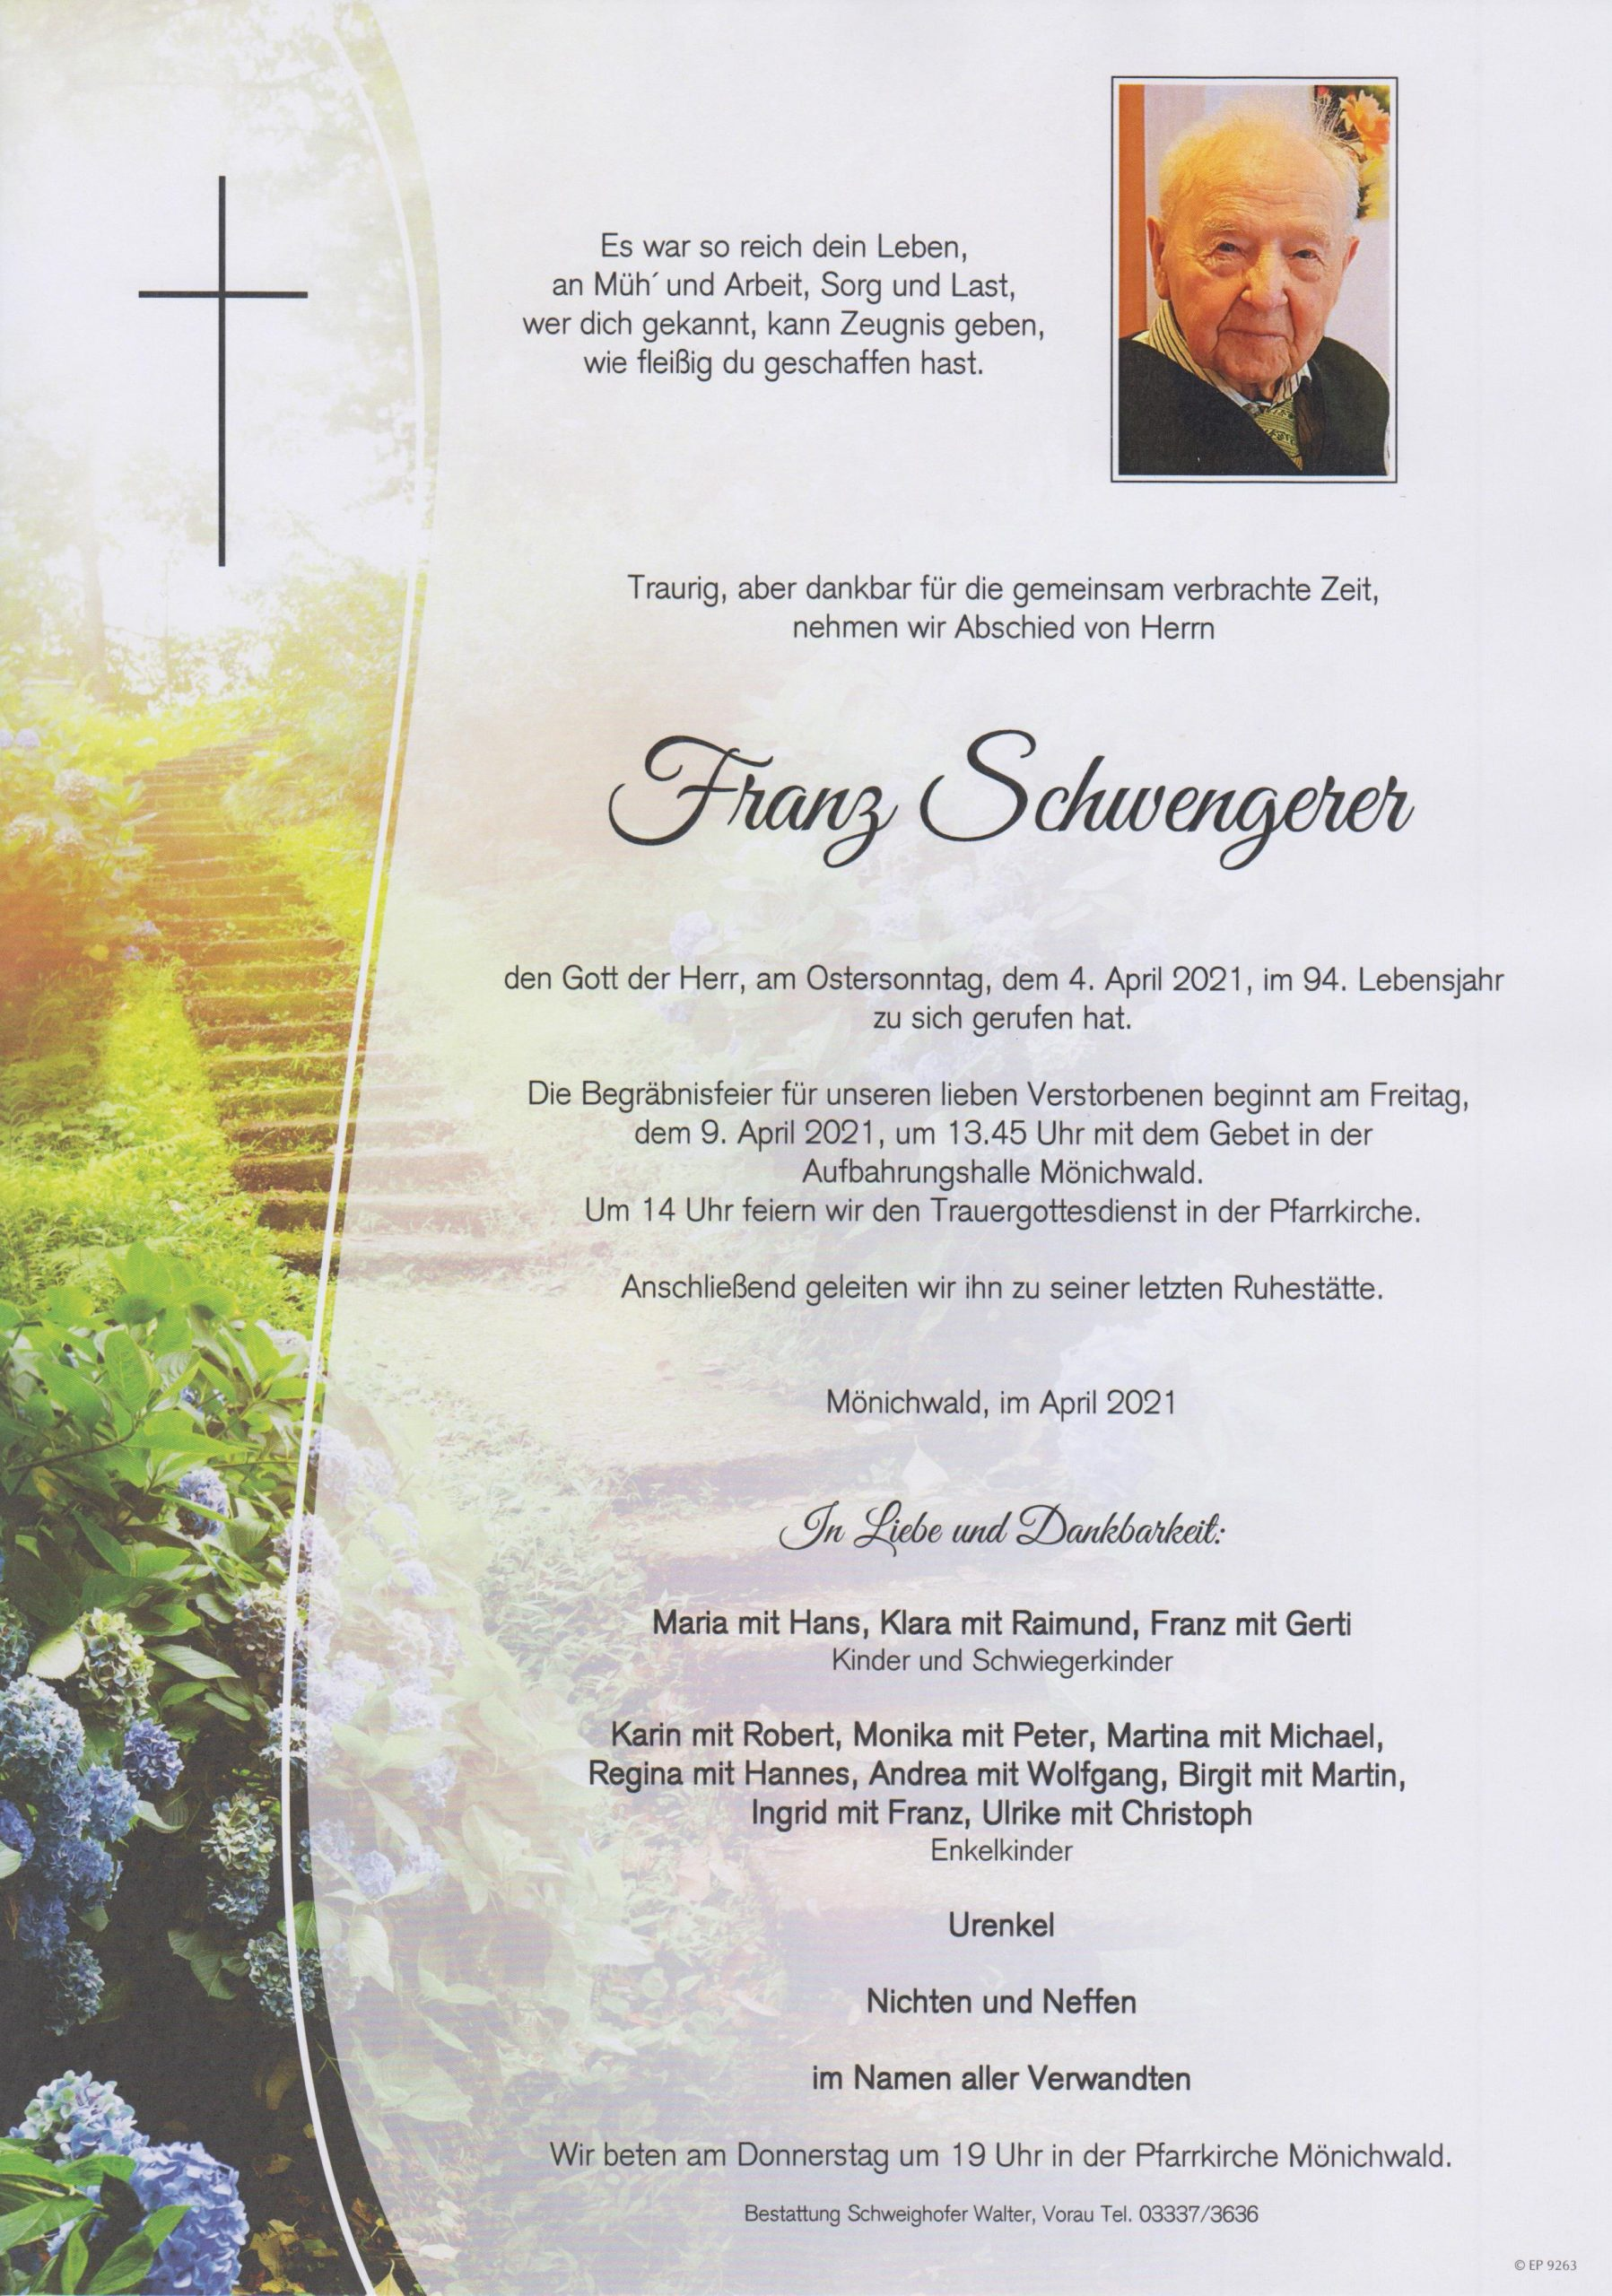 You are currently viewing Franz Schwengerer